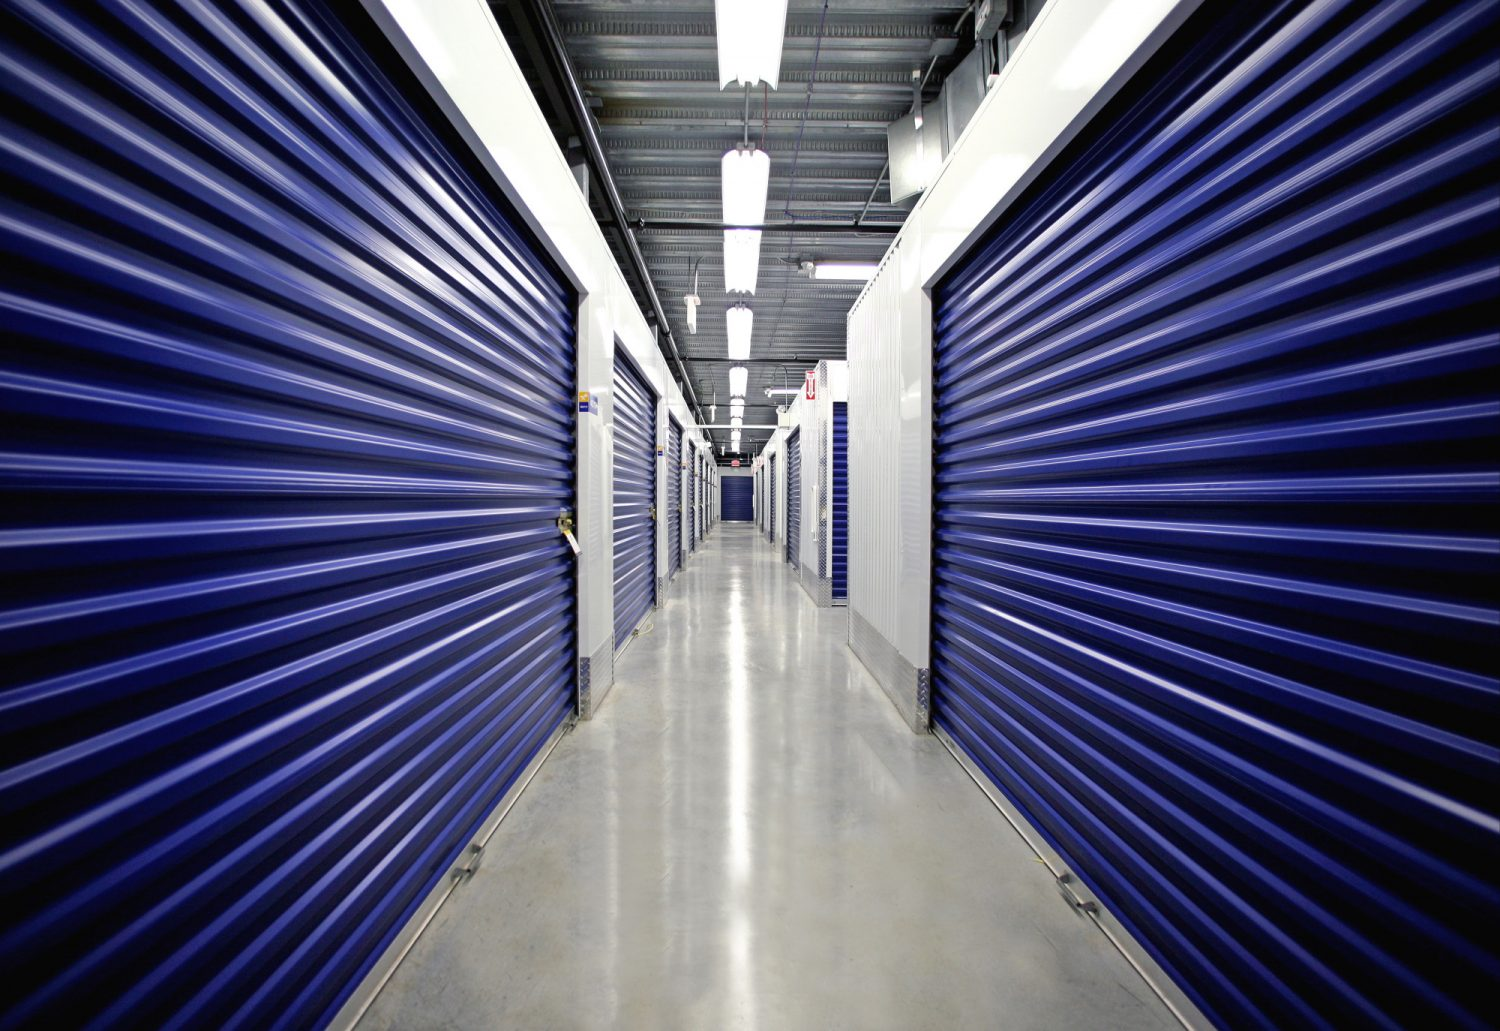 760605_original_miami_self_storage